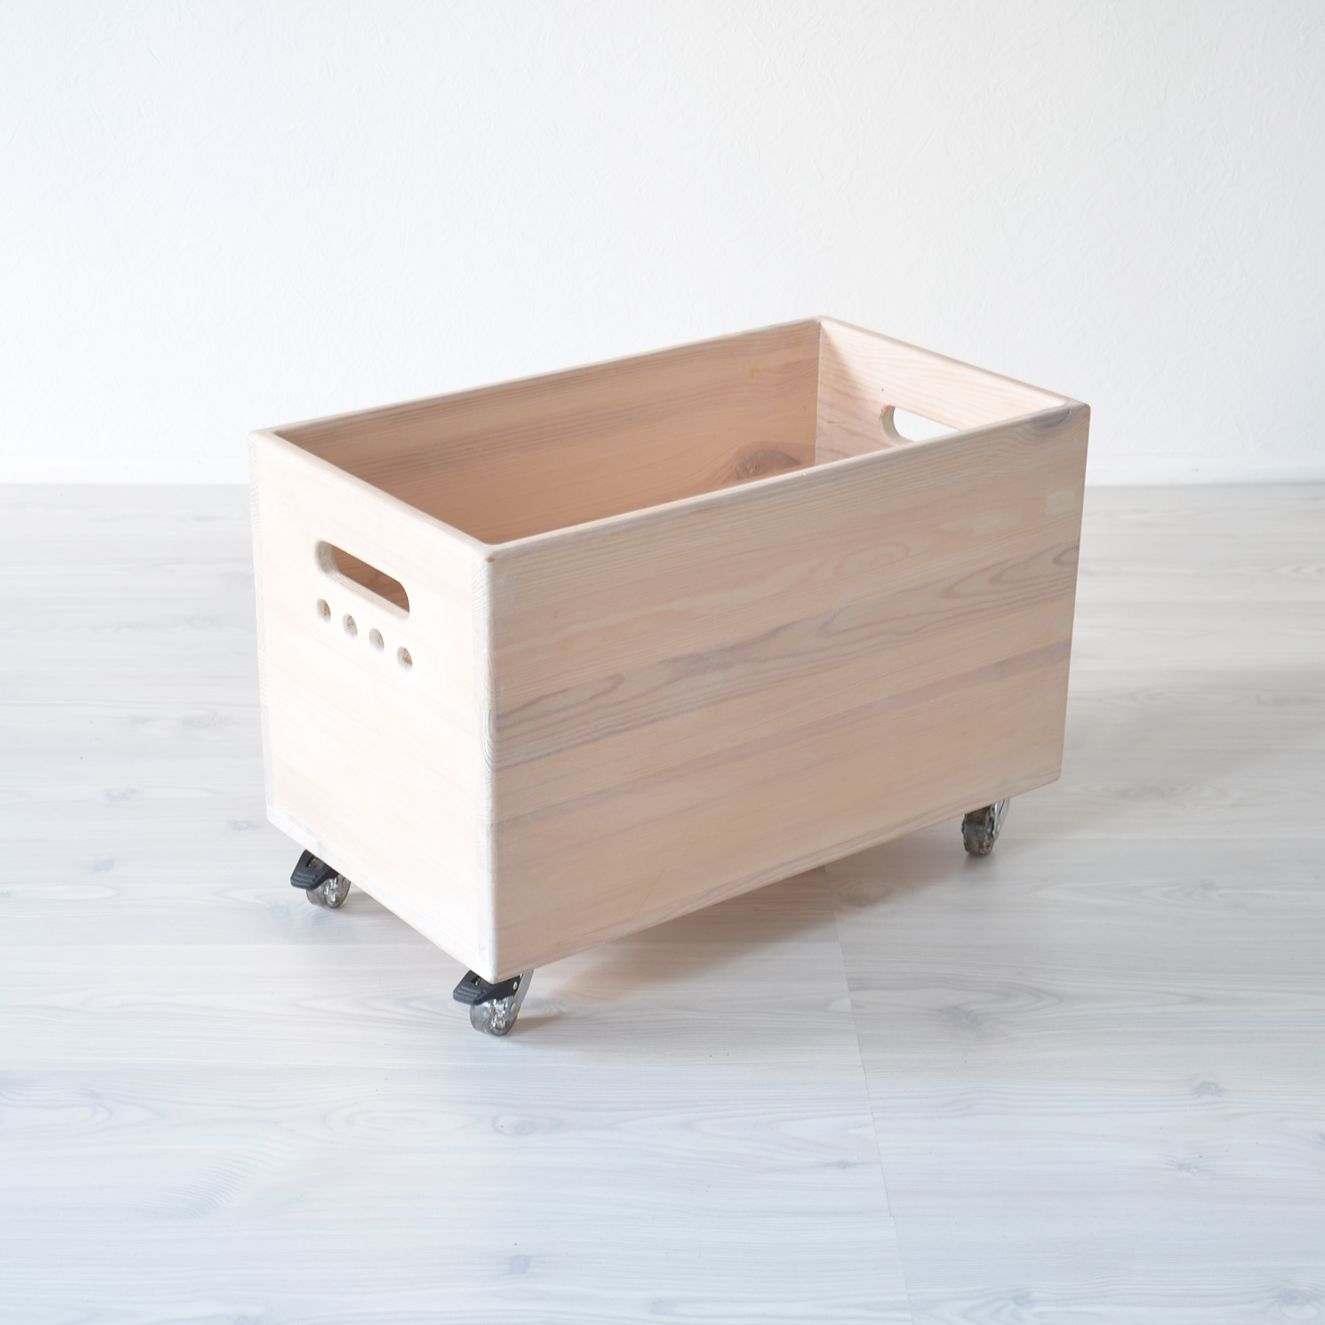 Wooden Toy Box Storage On Wheels